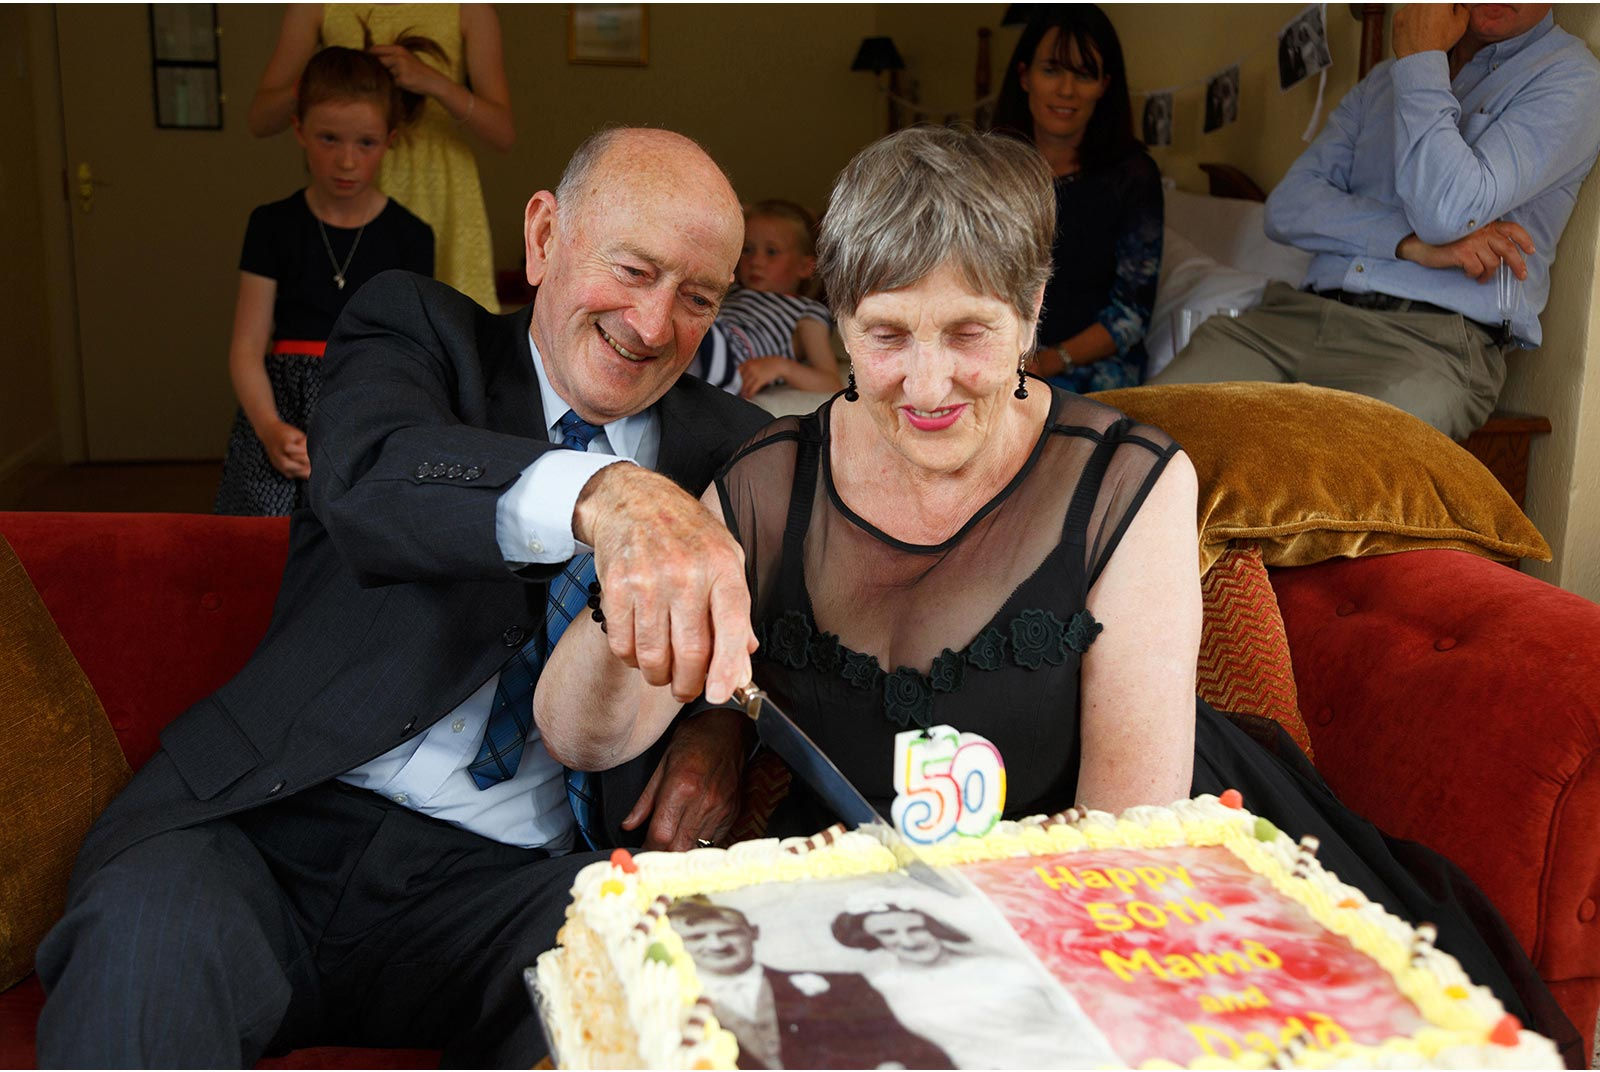 Couple cut into a big cake celebrating their 50th wedding anniversary